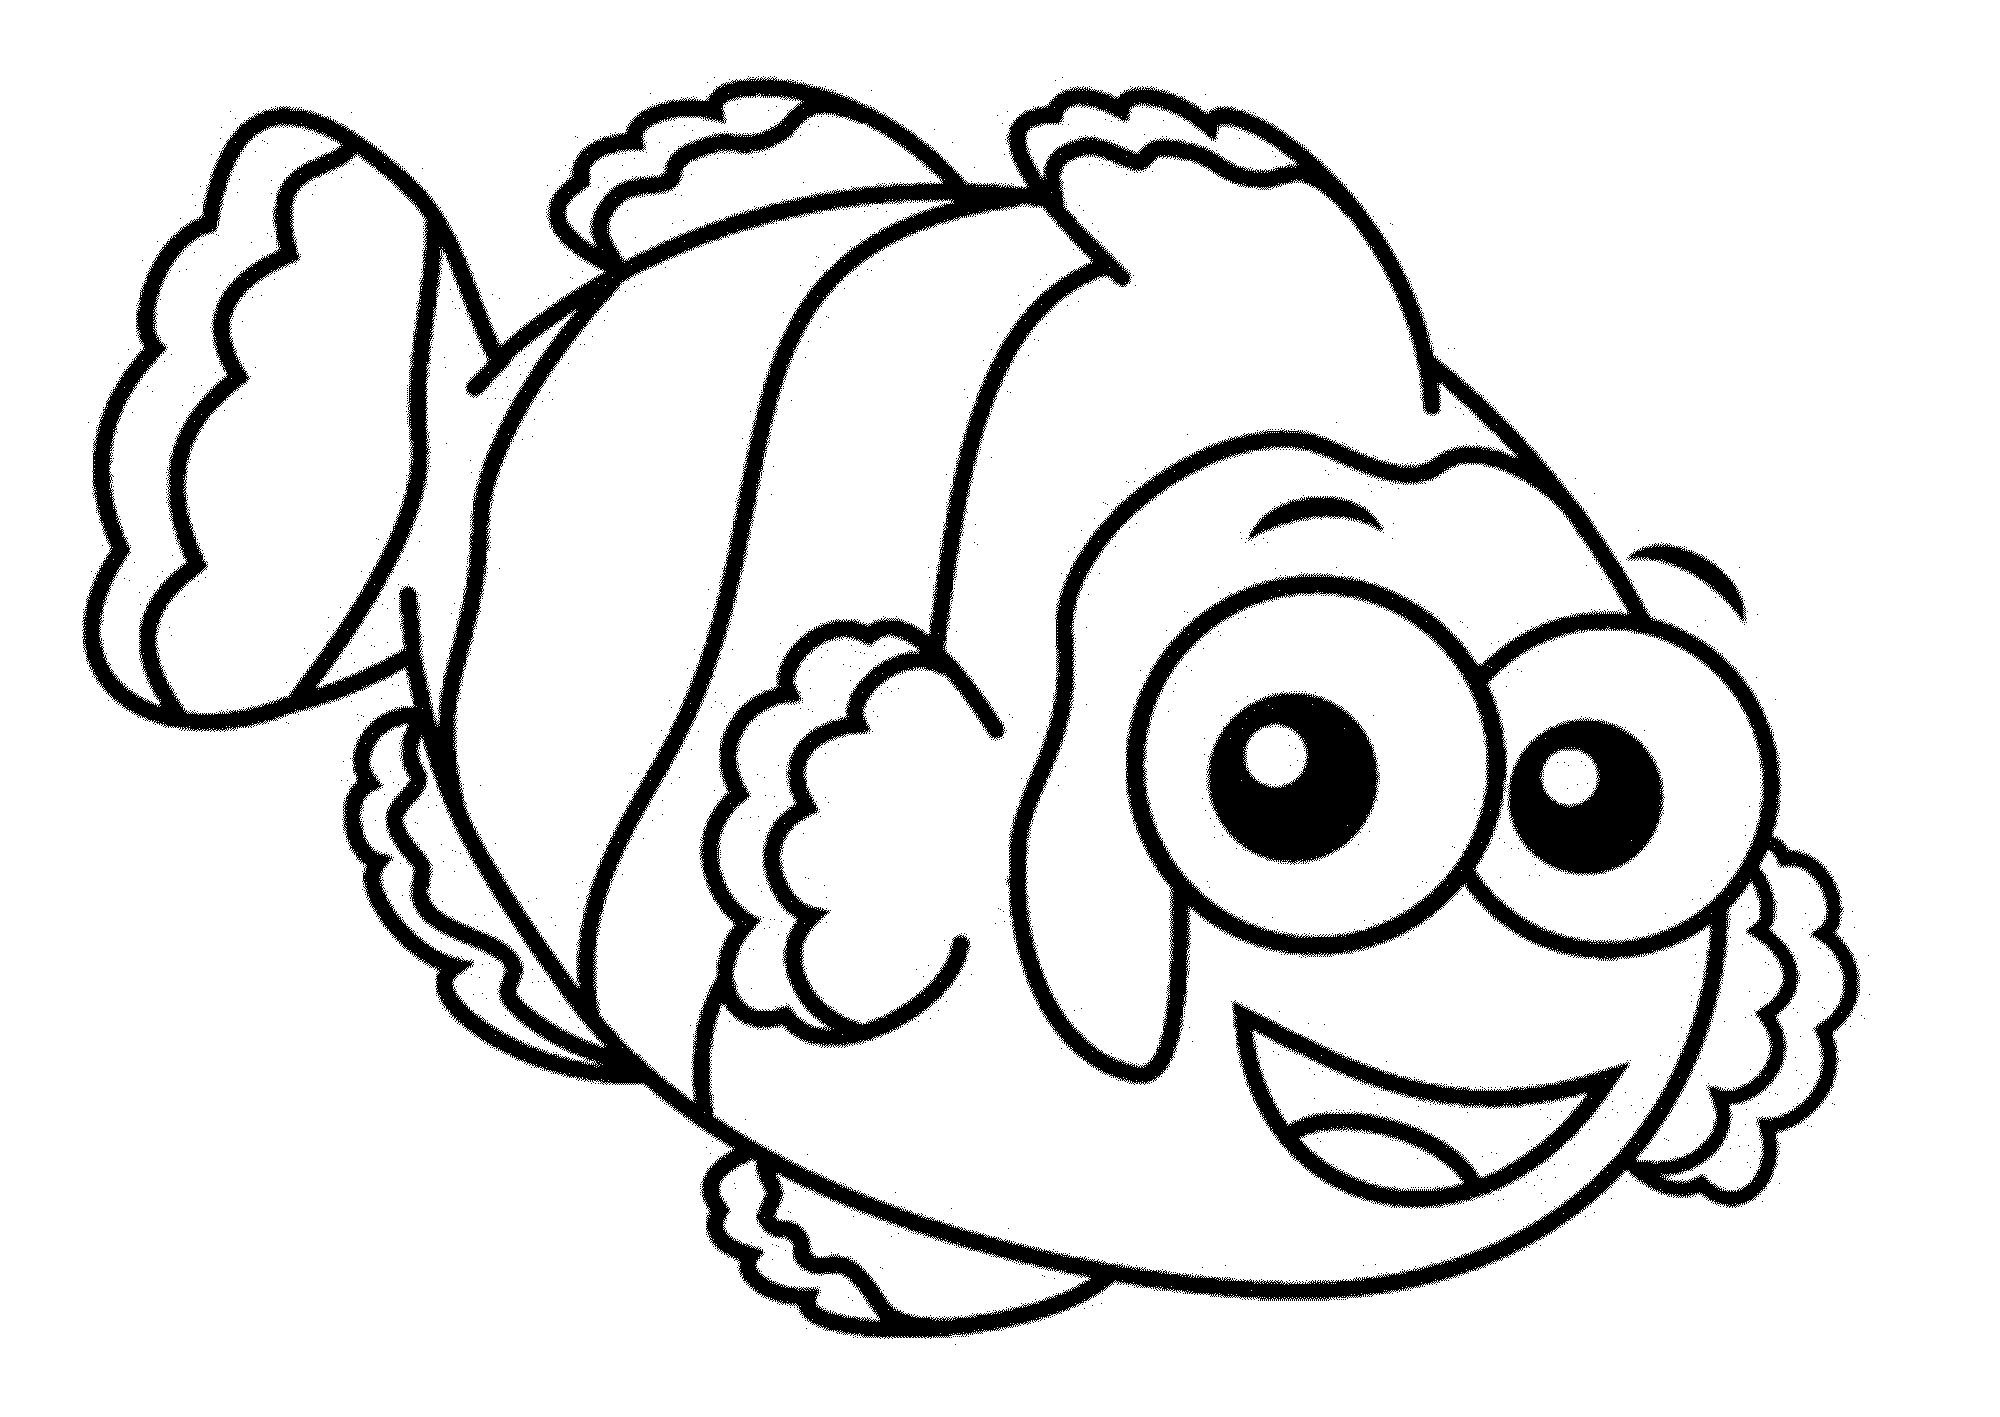 coloring fish pictures free printable fish coloring pages for kids pictures coloring fish